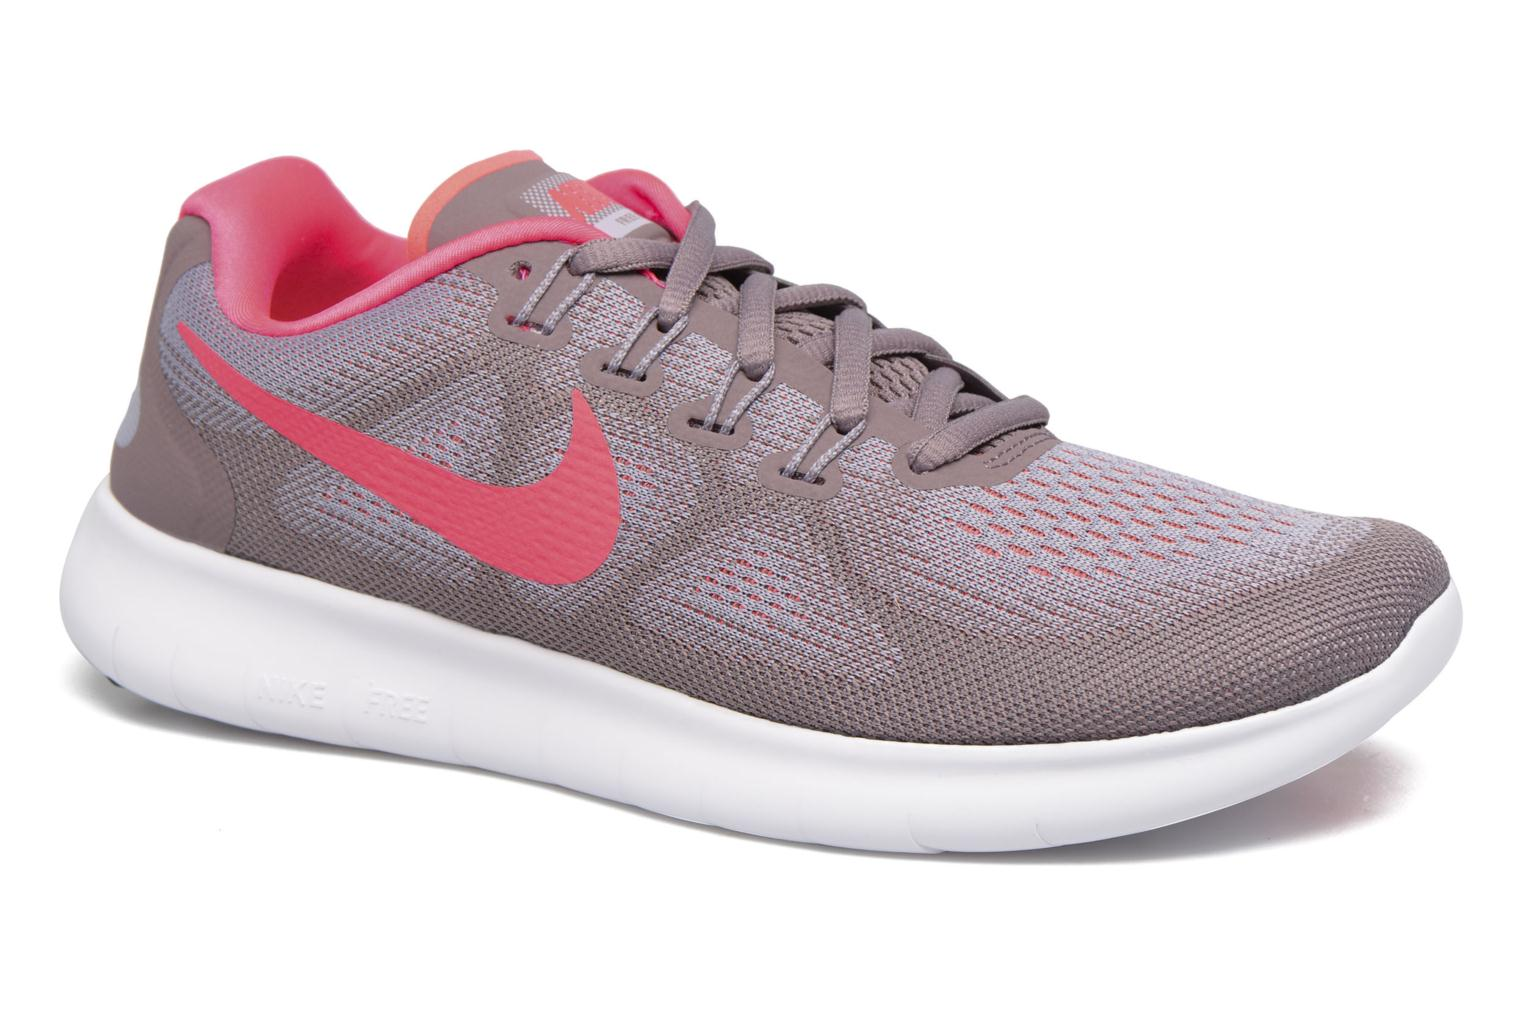 Wmns Nike Free Rn 2017 Provence Purple/Hot Punch-Taupe Grey